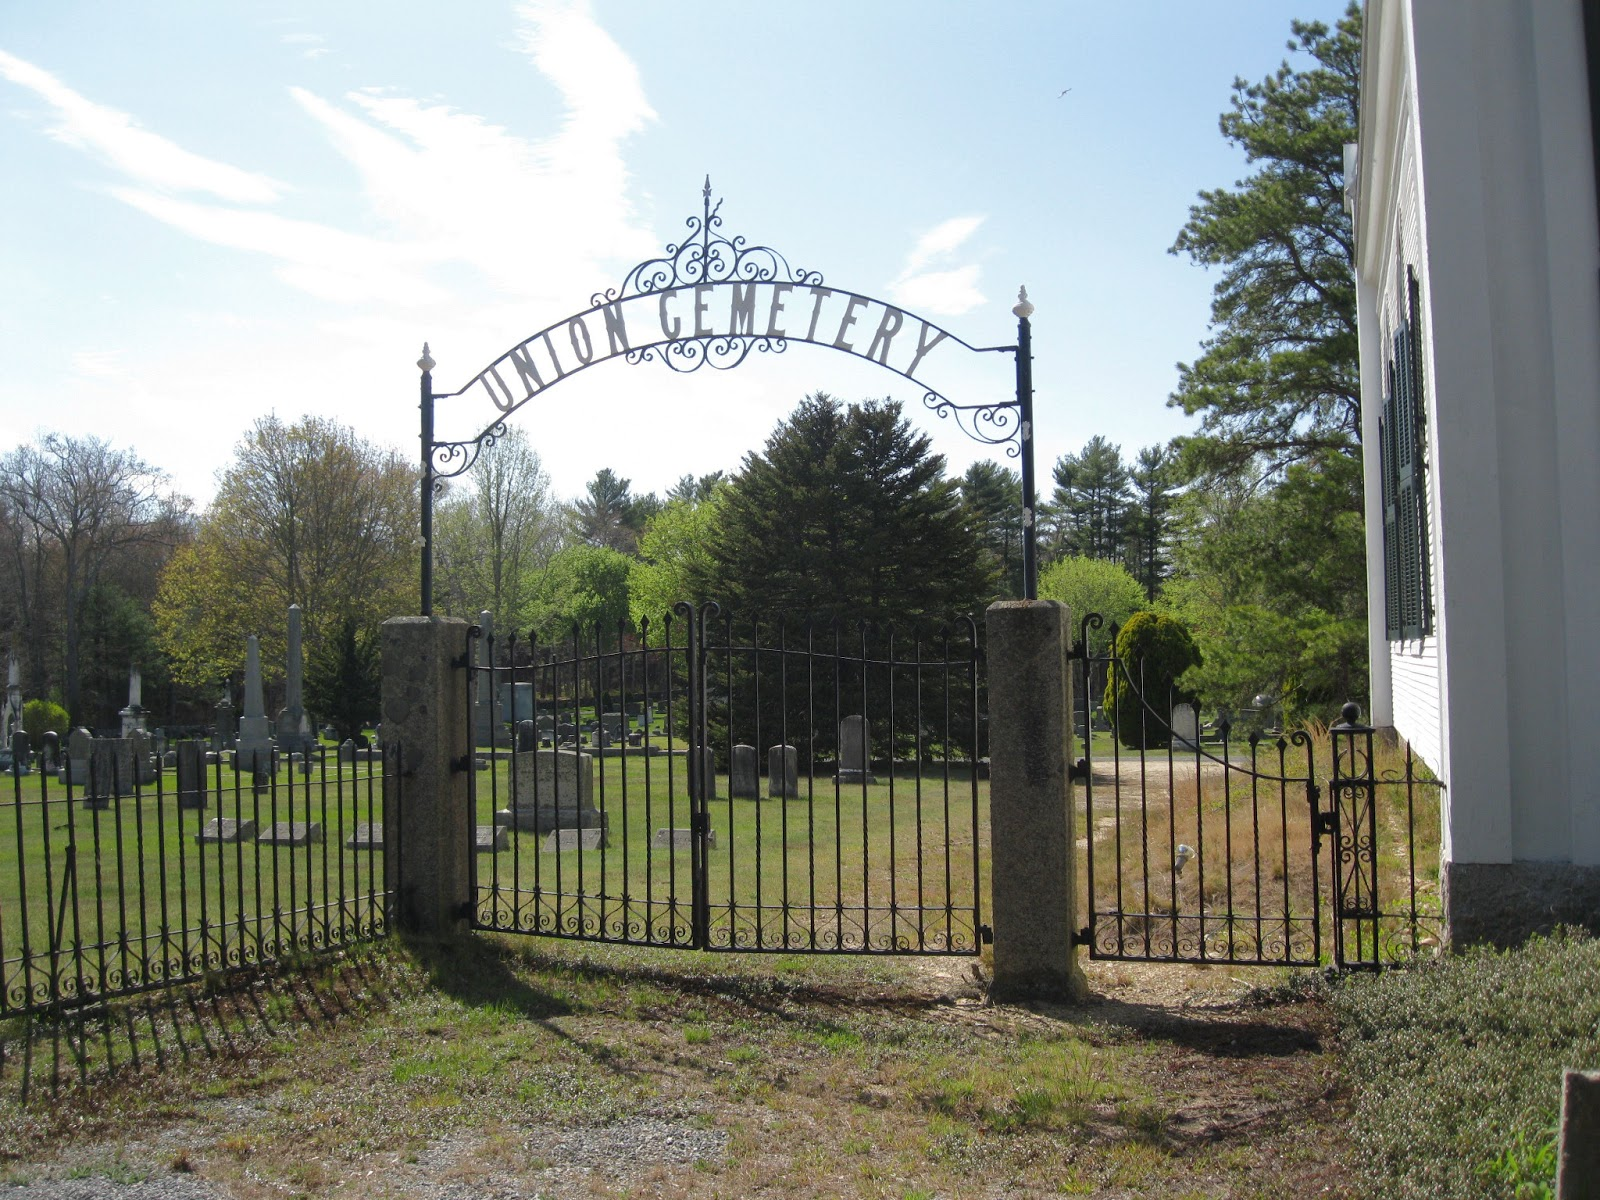 Union Cemetery Carver Ma. | West in New England